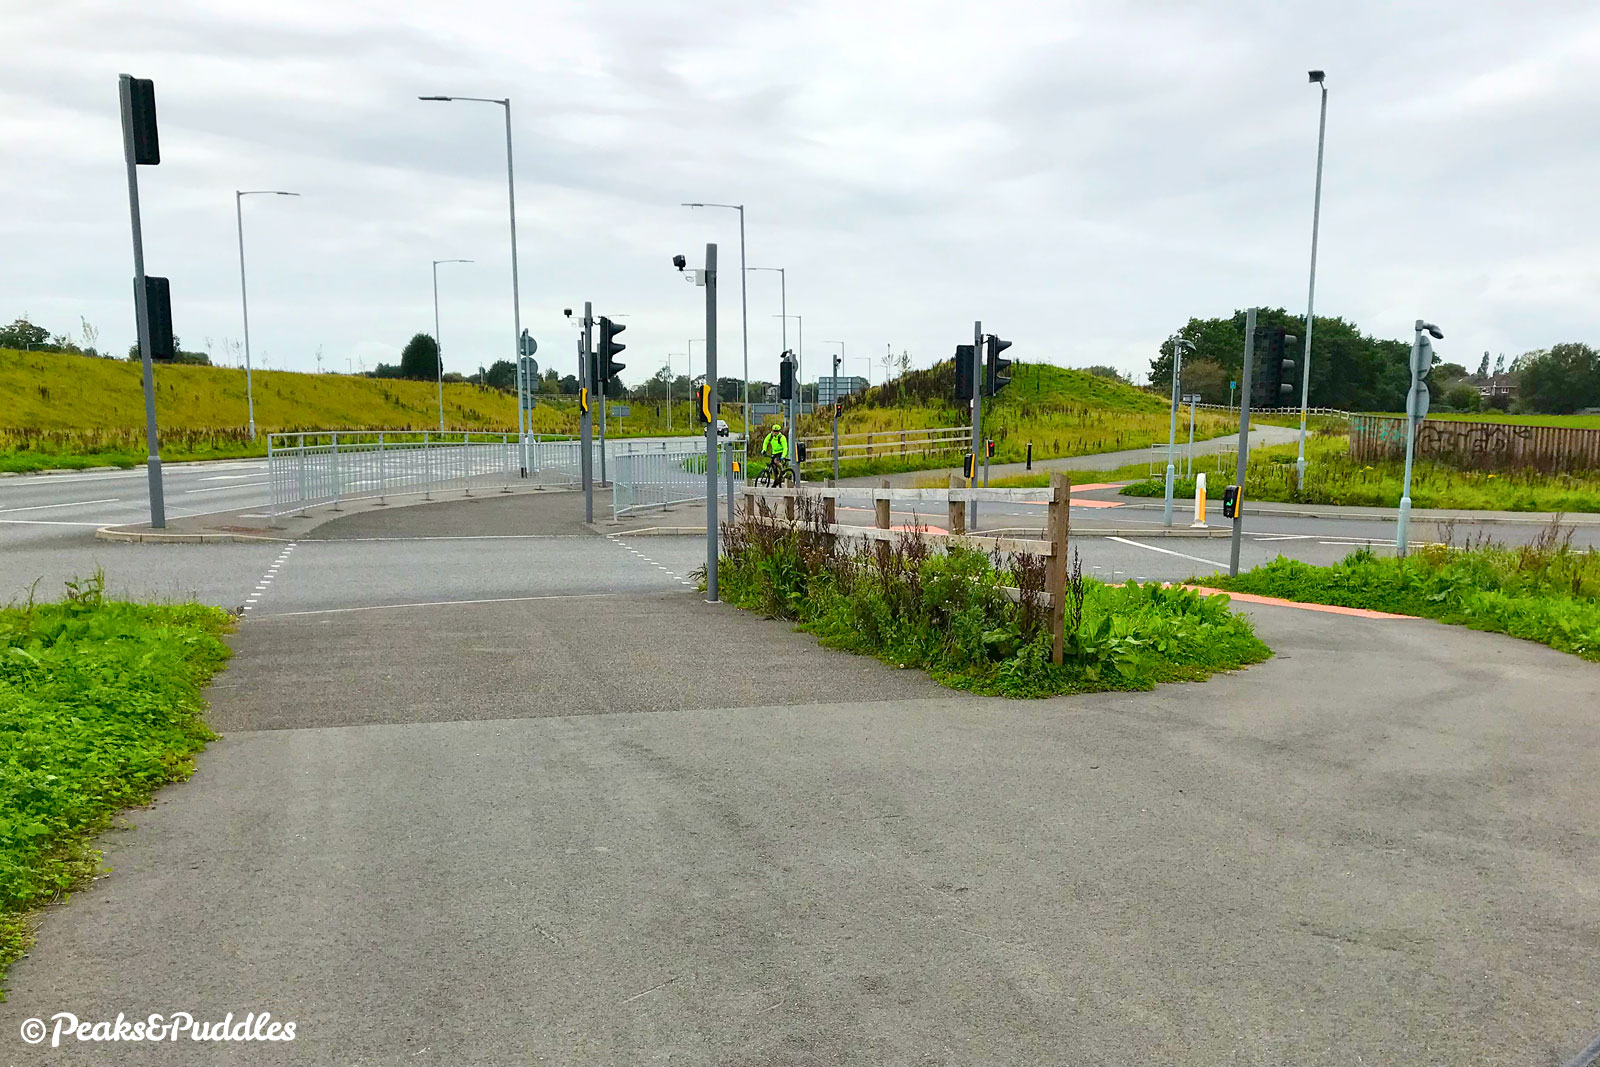 At Bramhall Oil Terminal two crossings are offered: the Pegasus for horses on the left is much easier for bikes.